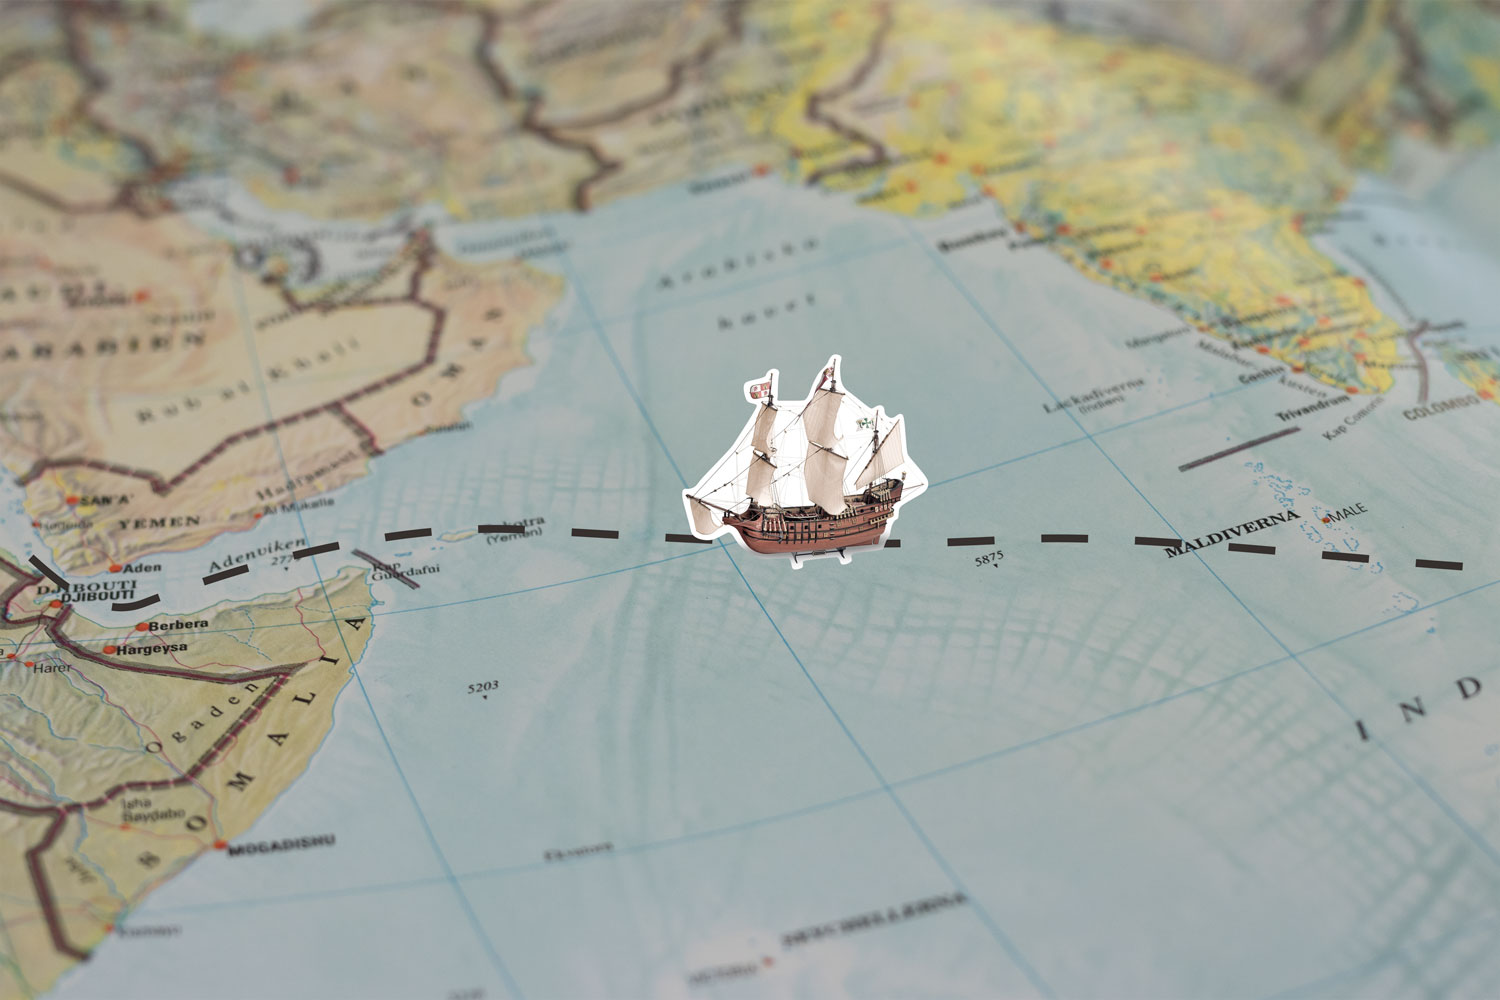 Map with boat